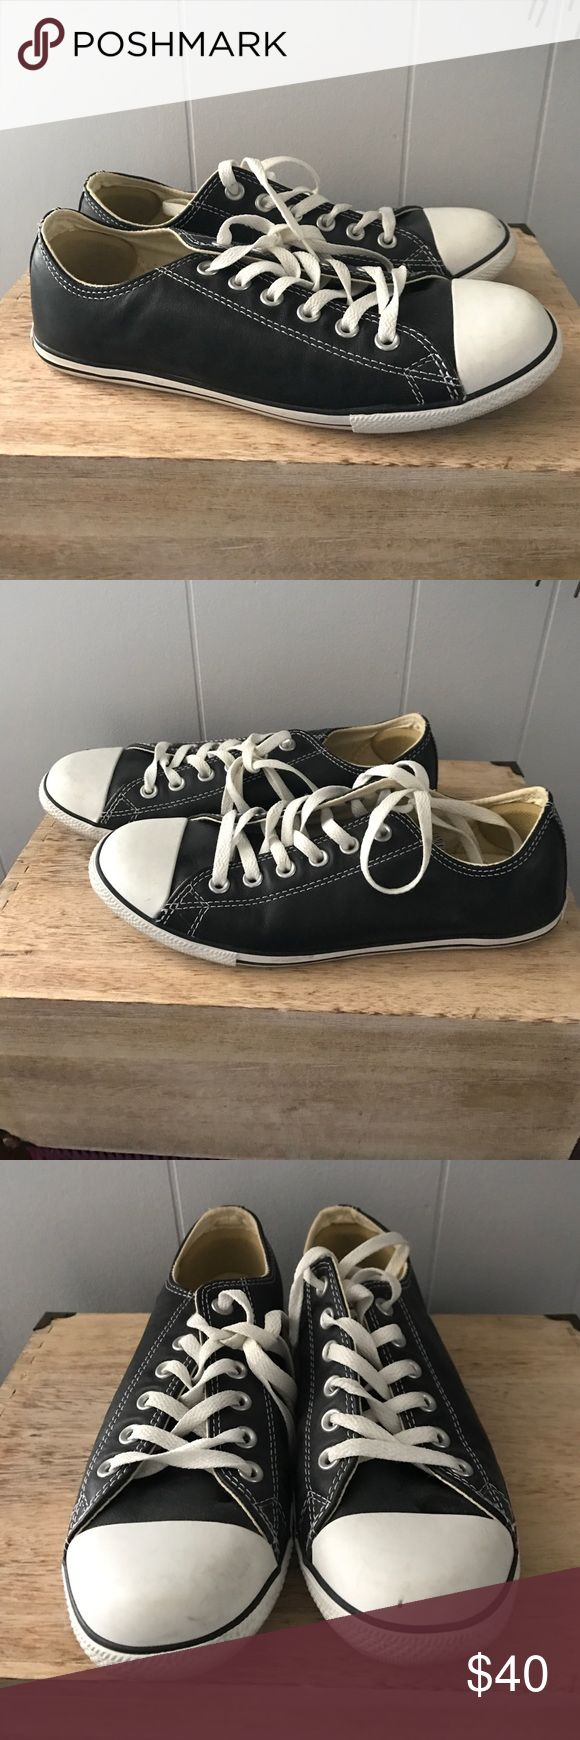 Black leather converse sneakers Classic black converse sneakers in leather. Worn only once. Converse Shoes Sneakers